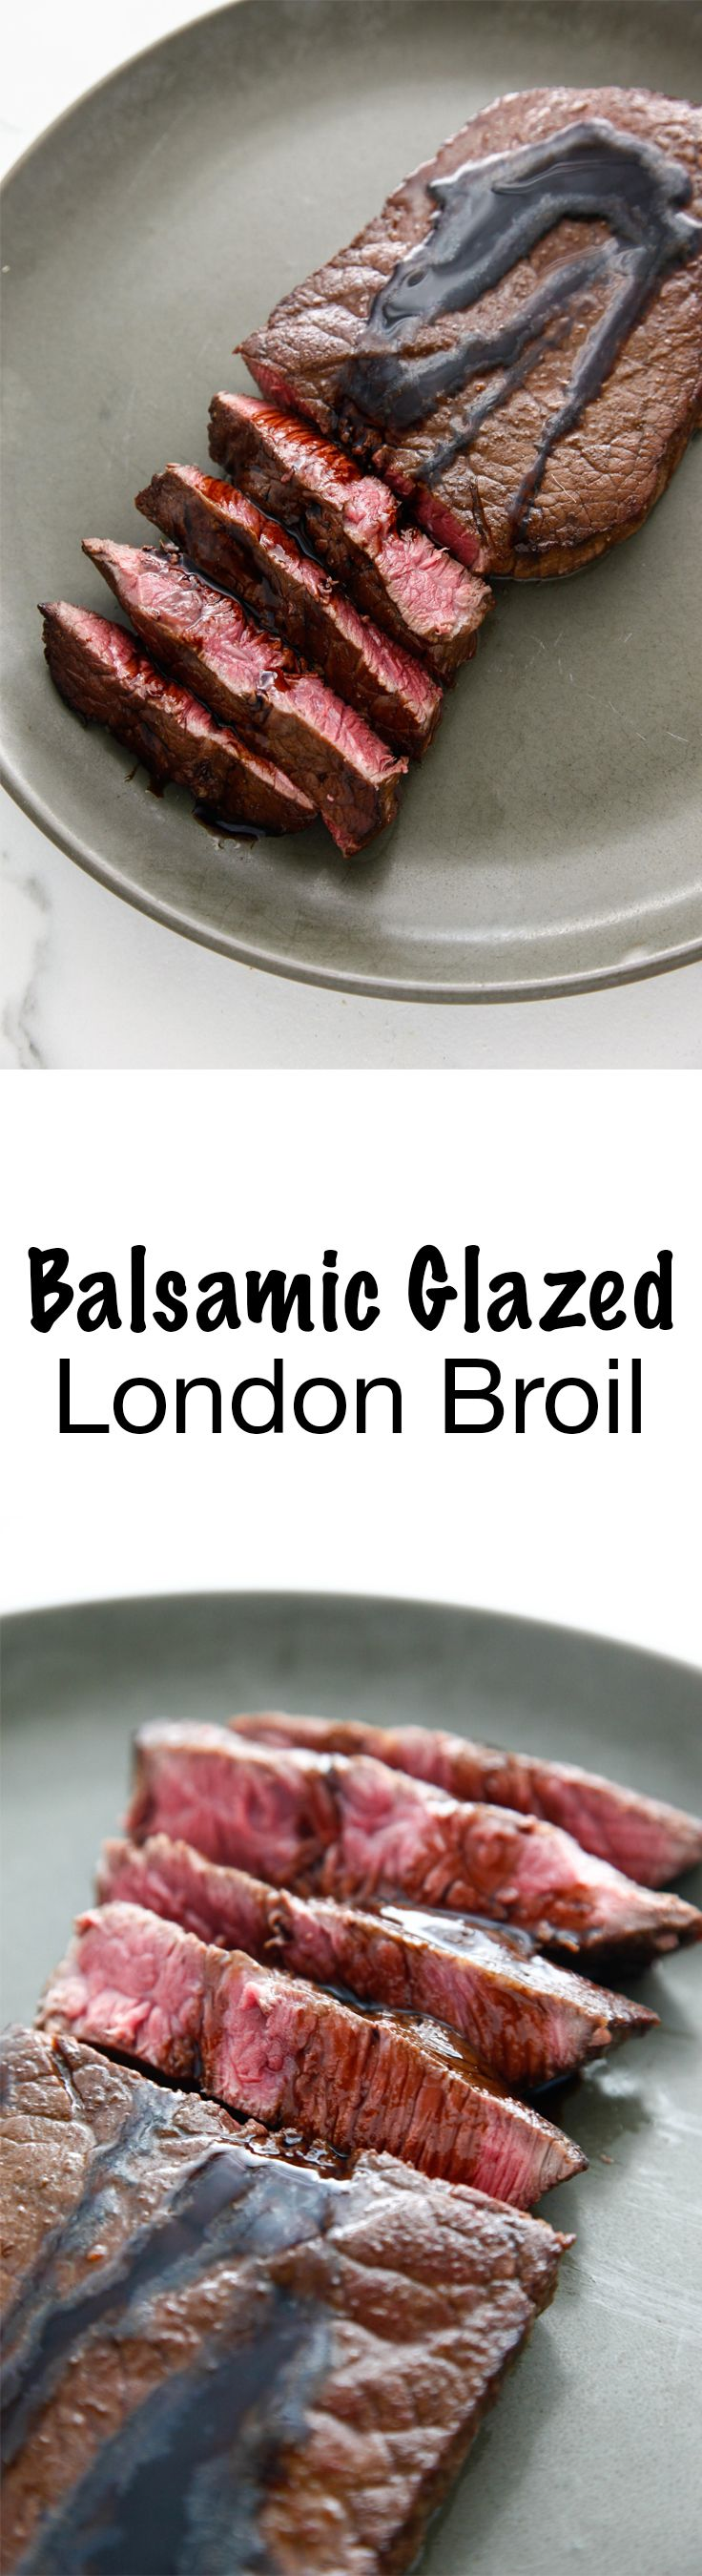 Balsamic Glazed London Broil via @thebrooklyncook